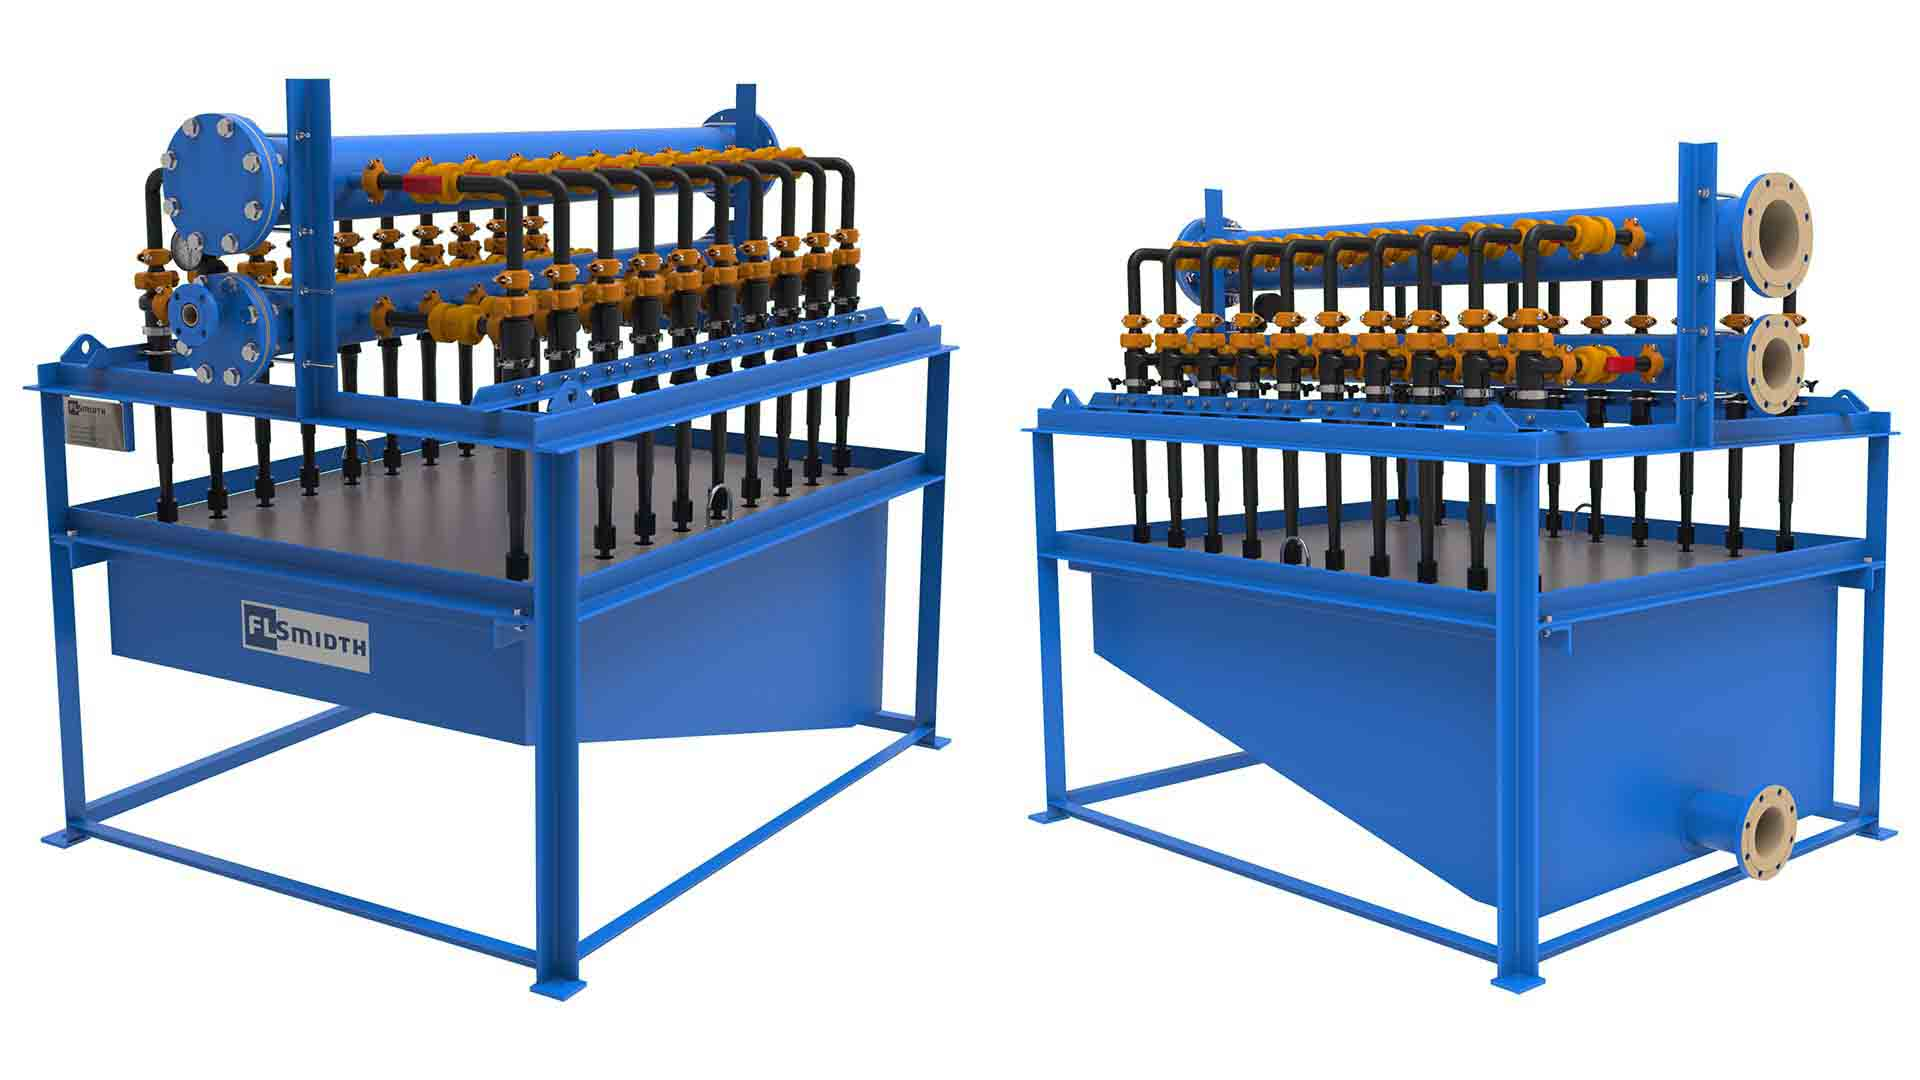 Krebs Urethane Cyclone for Industrial separation